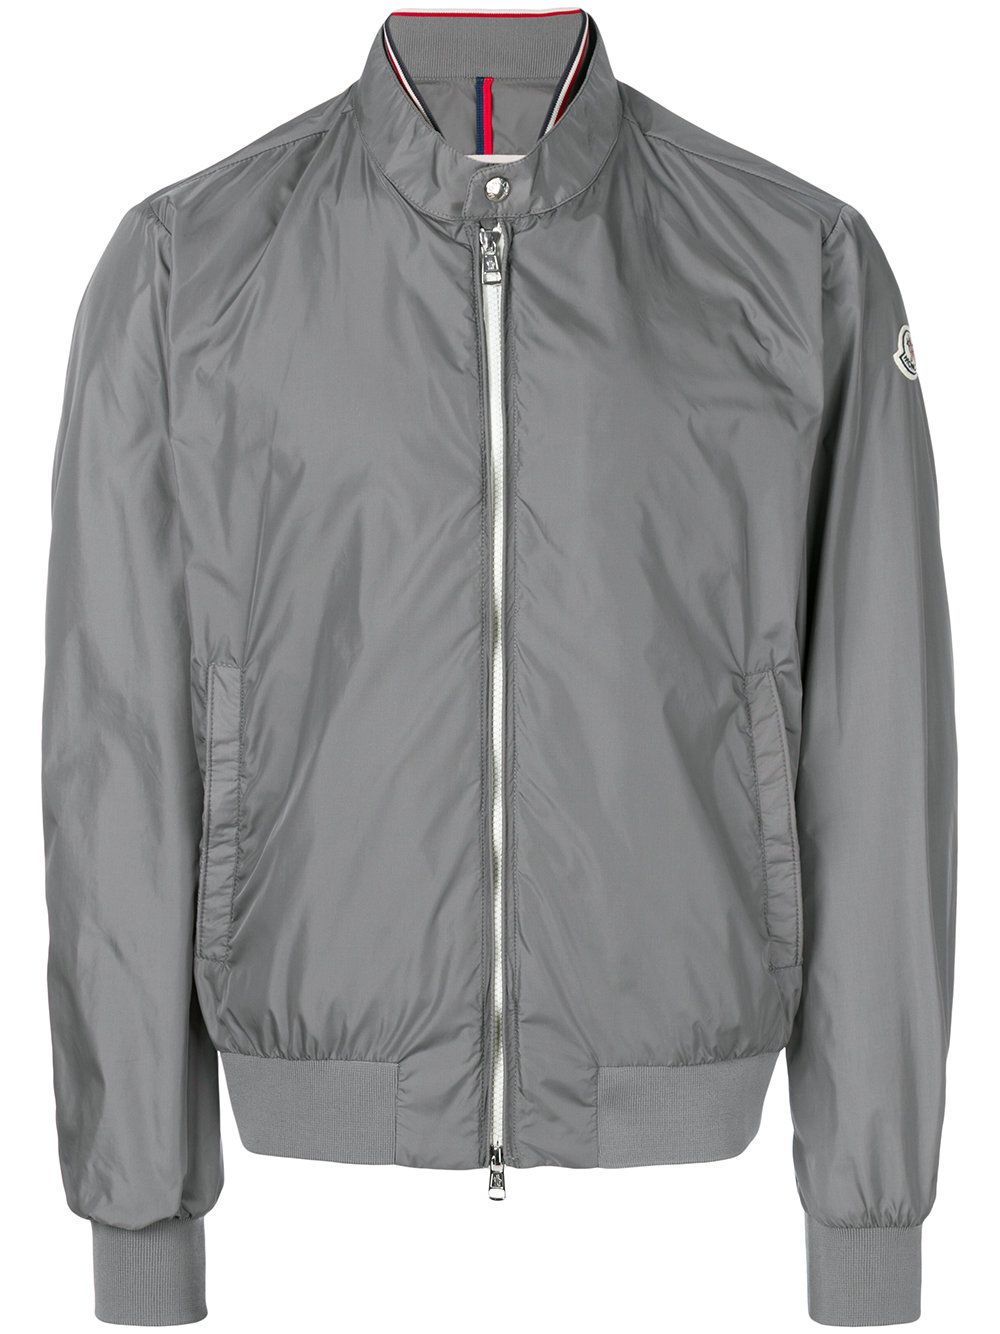 #moncler #jacket #miroir #grey #bomber #style #fashion #menswear